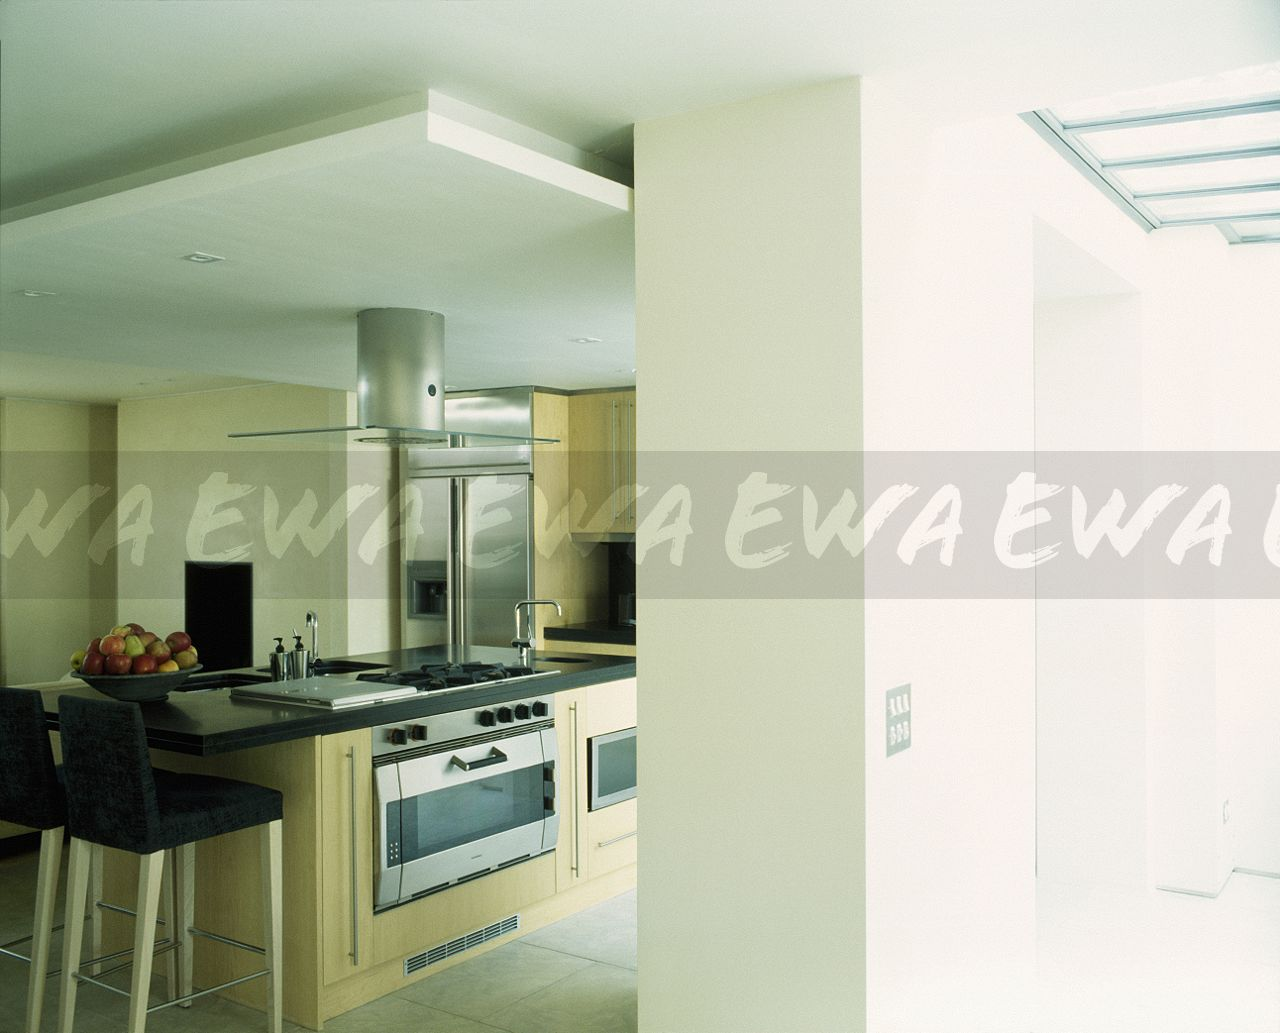 Black Stools At Breakfast Bar On Island Unit With False Ceiling And Extractor Above Oven